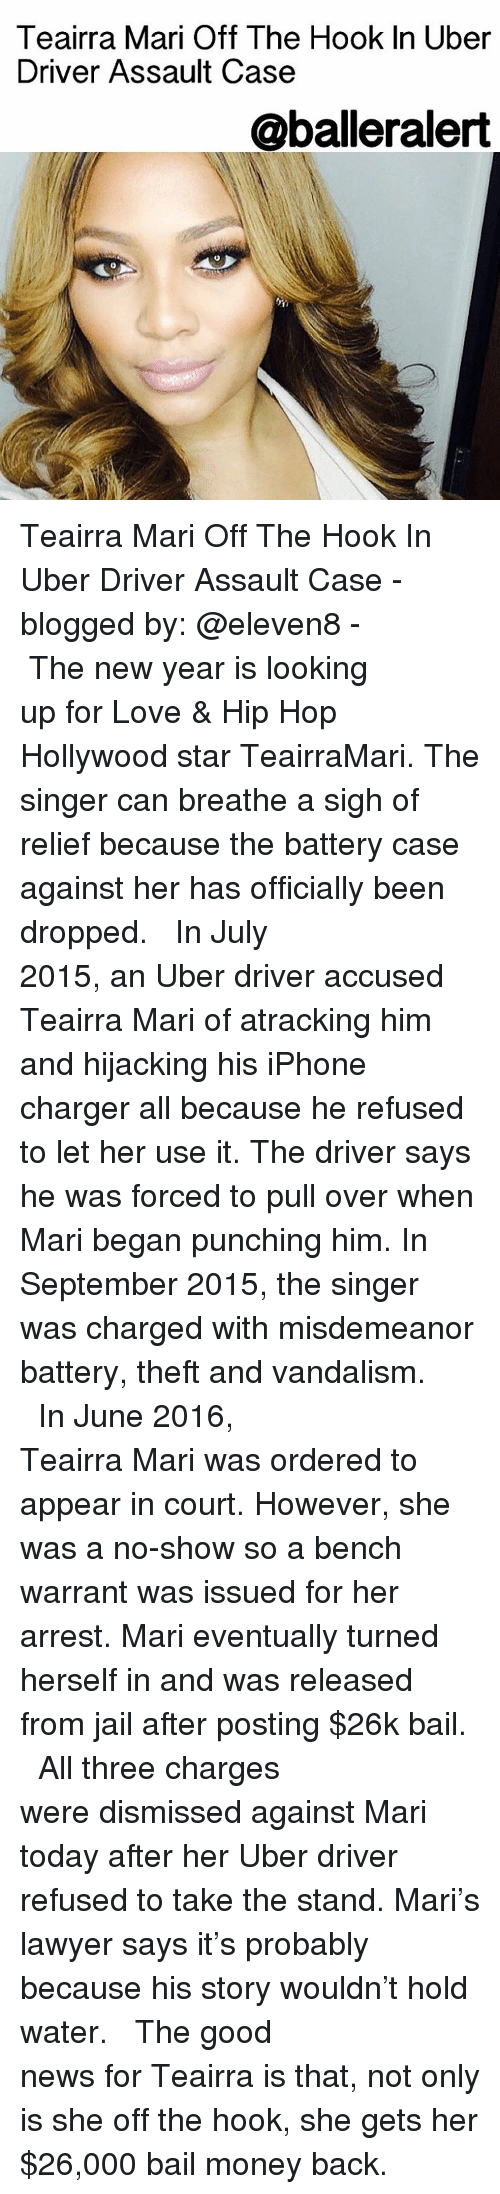 Lawyer, Memes, and Chargers: Teairra Mari  Off The Hook In Uber  Driver Assault Case  @balleralert Teairra Mari Off The Hook In Uber Driver Assault Case - blogged by: @eleven8 - ⠀⠀⠀⠀⠀⠀⠀⠀⠀ ⠀⠀⠀⠀⠀⠀⠀⠀⠀ The new year is looking up for Love & Hip Hop Hollywood star TeairraMari. The singer can breathe a sigh of relief because the battery case against her has officially been dropped. ⠀⠀⠀⠀⠀⠀⠀⠀⠀ ⠀⠀⠀⠀⠀⠀⠀⠀⠀ In July 2015, an Uber driver accused Teairra Mari of atracking him and hijacking his iPhone charger all because he refused to let her use it. The driver says he was forced to pull over when Mari began punching him. In September 2015, the singer was charged with misdemeanor battery, theft and vandalism. ⠀⠀⠀⠀⠀⠀⠀⠀⠀ ⠀⠀⠀⠀⠀⠀⠀⠀⠀ In June 2016, Teairra Mari was ordered to appear in court. However, she was a no-show so a bench warrant was issued for her arrest. Mari eventually turned herself in and was released from jail after posting $26k bail. ⠀⠀⠀⠀⠀⠀⠀⠀⠀ ⠀⠀⠀⠀⠀⠀⠀⠀⠀ All three charges were dismissed against Mari today after her Uber driver refused to take the stand. Mari's lawyer says it's probably because his story wouldn't hold water. ⠀⠀⠀⠀⠀⠀⠀⠀⠀ ⠀⠀⠀⠀⠀⠀⠀⠀⠀ The good news for Teairra is that, not only is she off the hook, she gets her $26,000 bail money back.